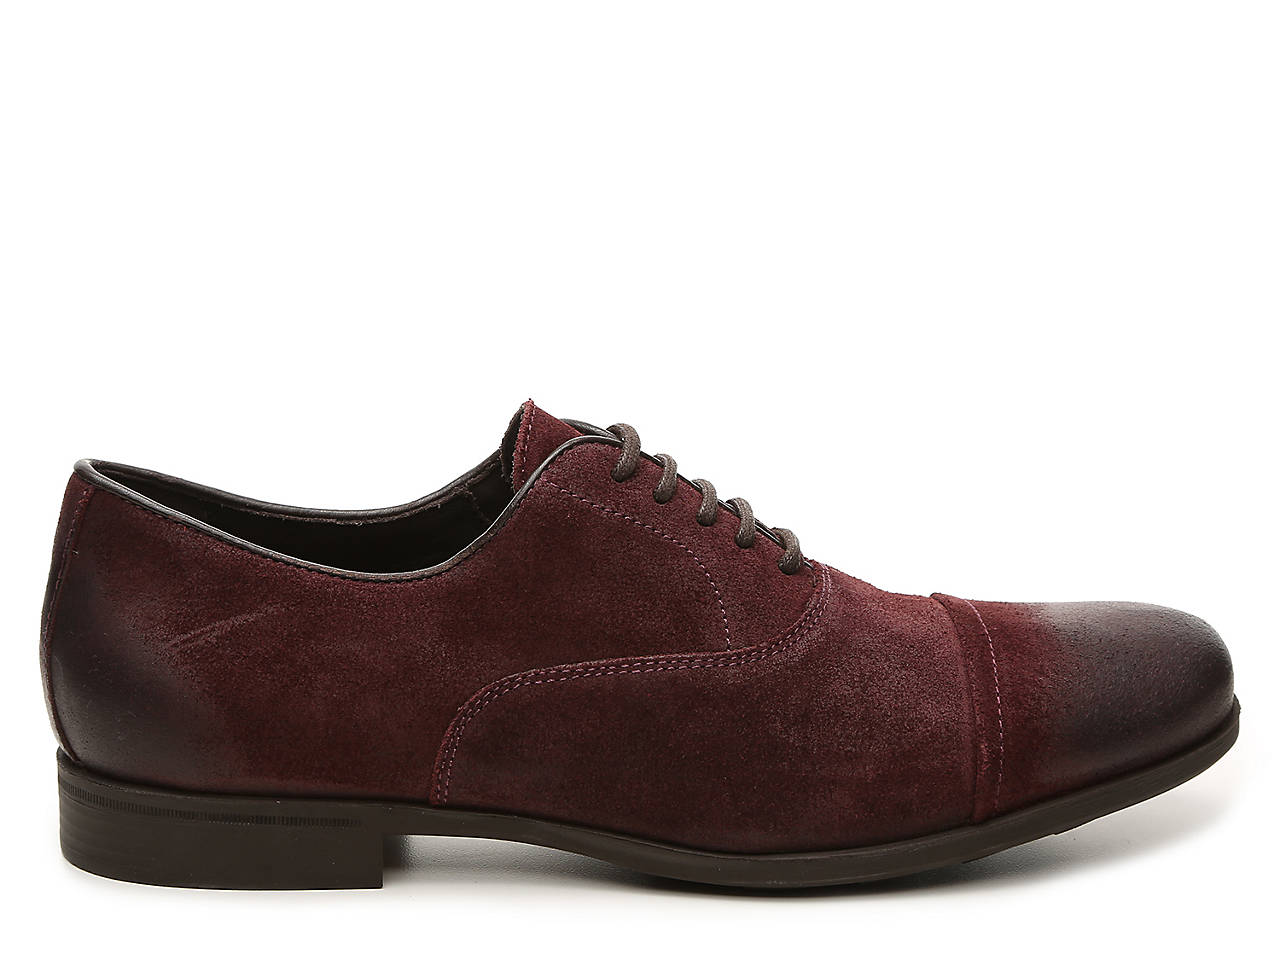 Besmington Cap Toe Oxford